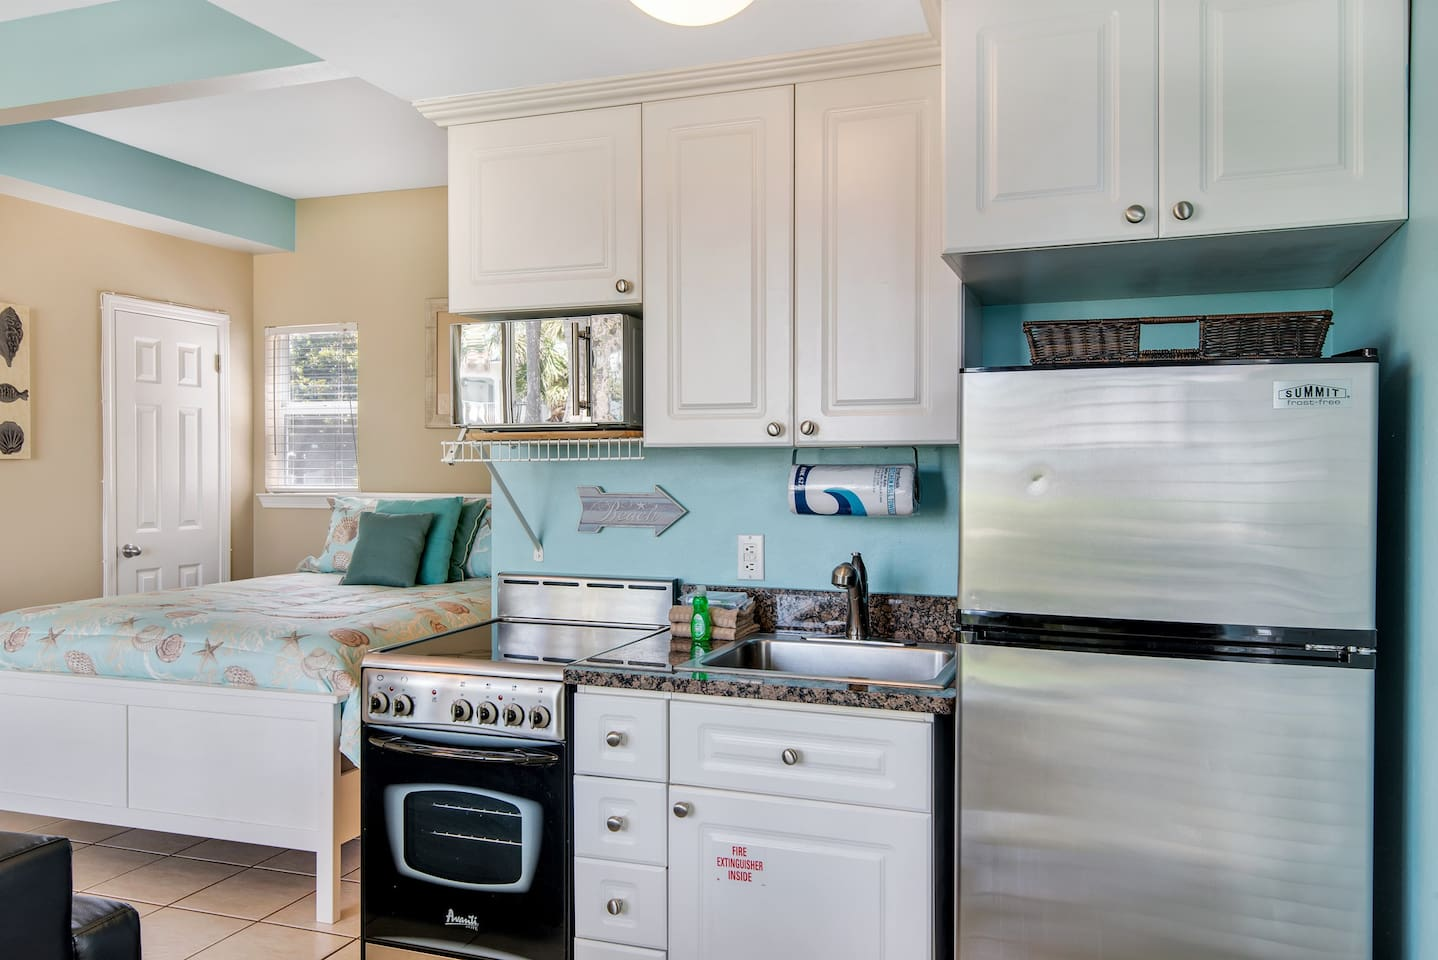 florida and yards nantucket luxury property bed fl area ha hotels from rentals image cottages destin the in resorts beach deal s conservation rainbow home